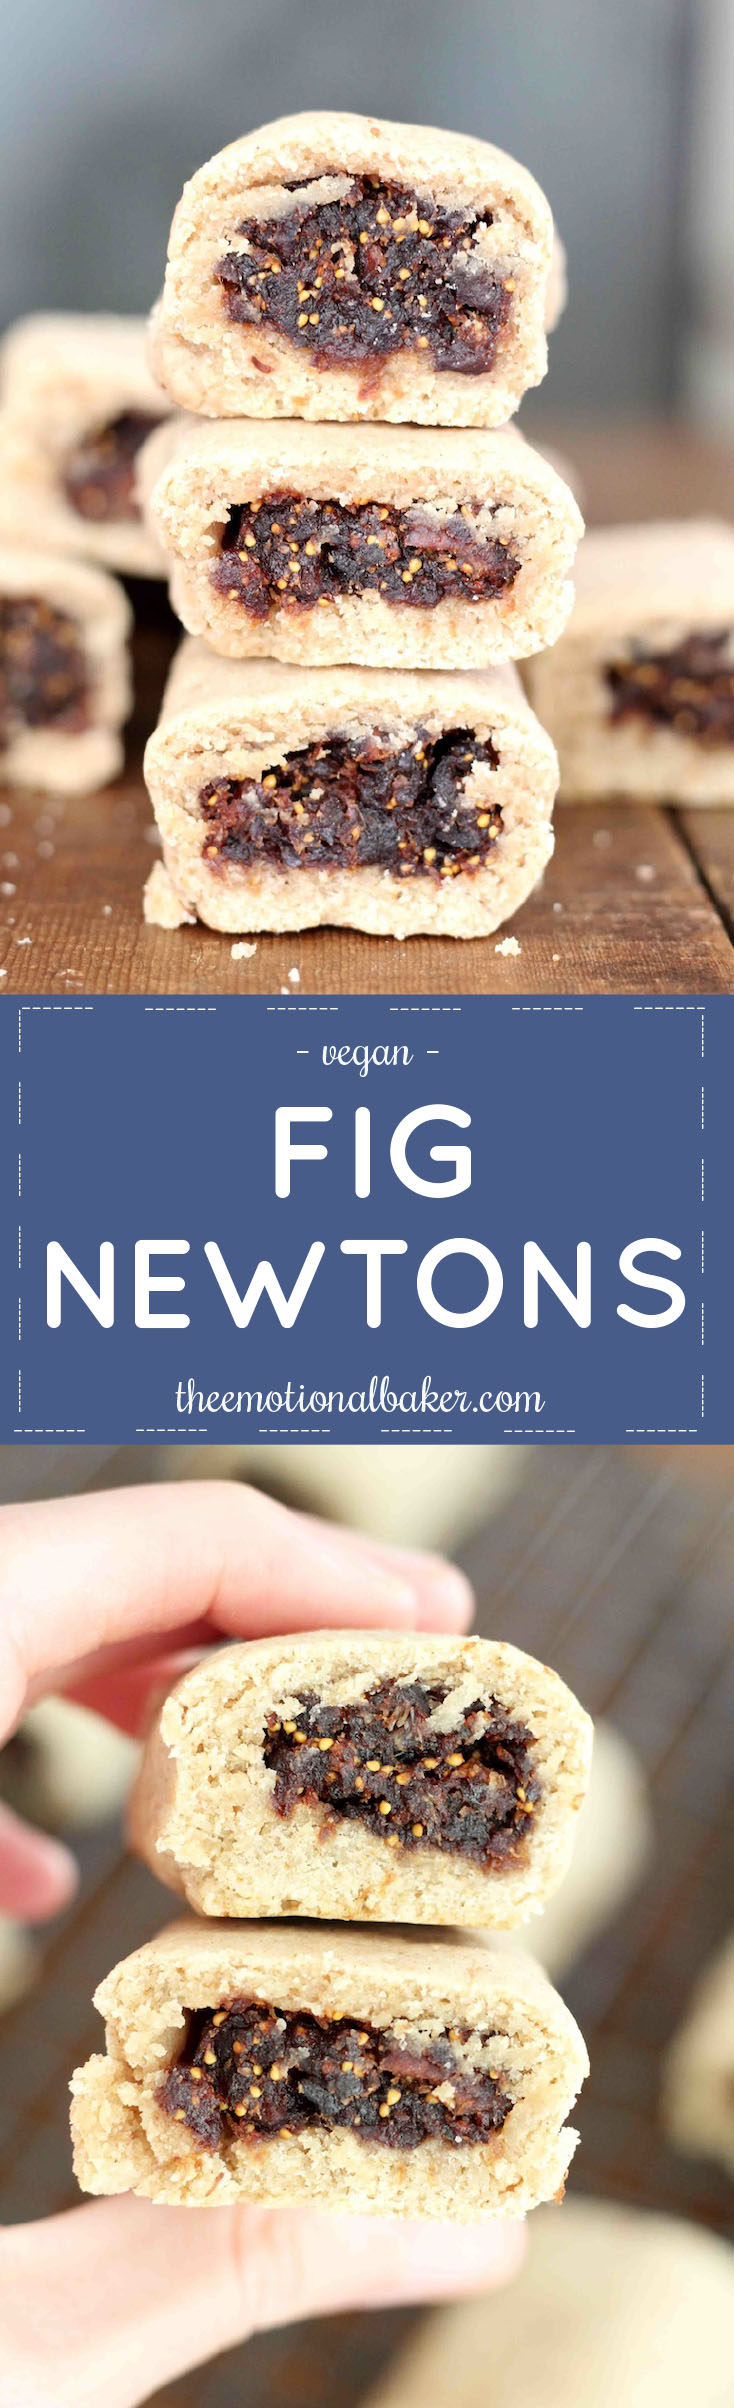 Homemade is always better! The same is true for these scratch made Fig Newtons!